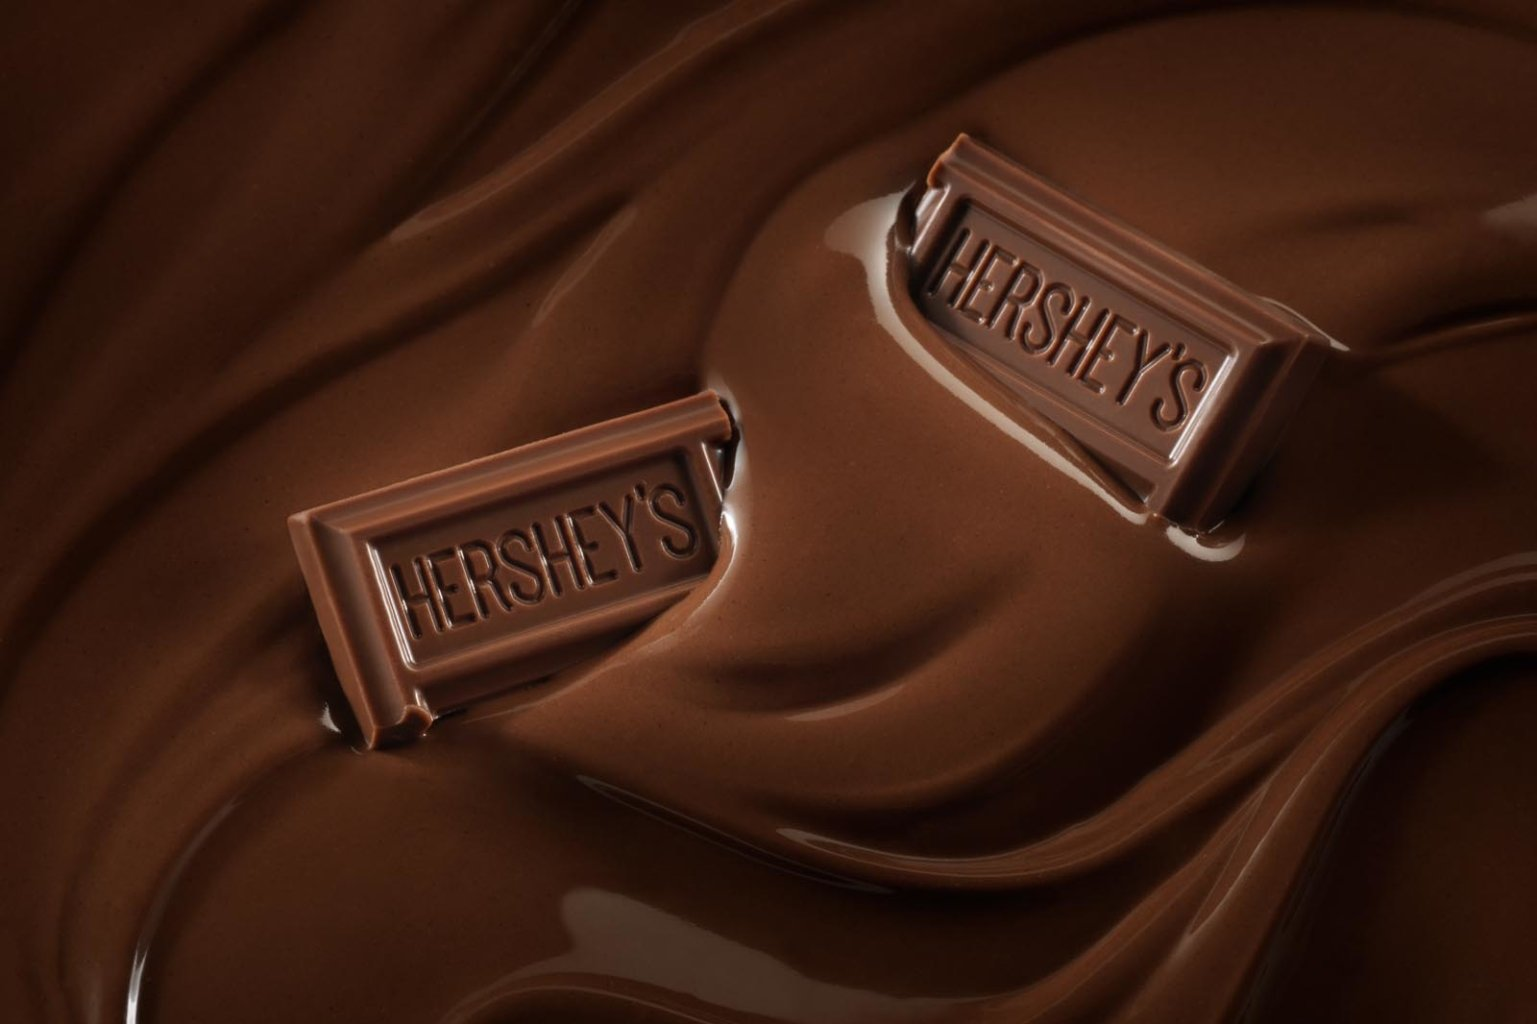 Hershey's chocolate bars in pool of chocolate after digital retouching